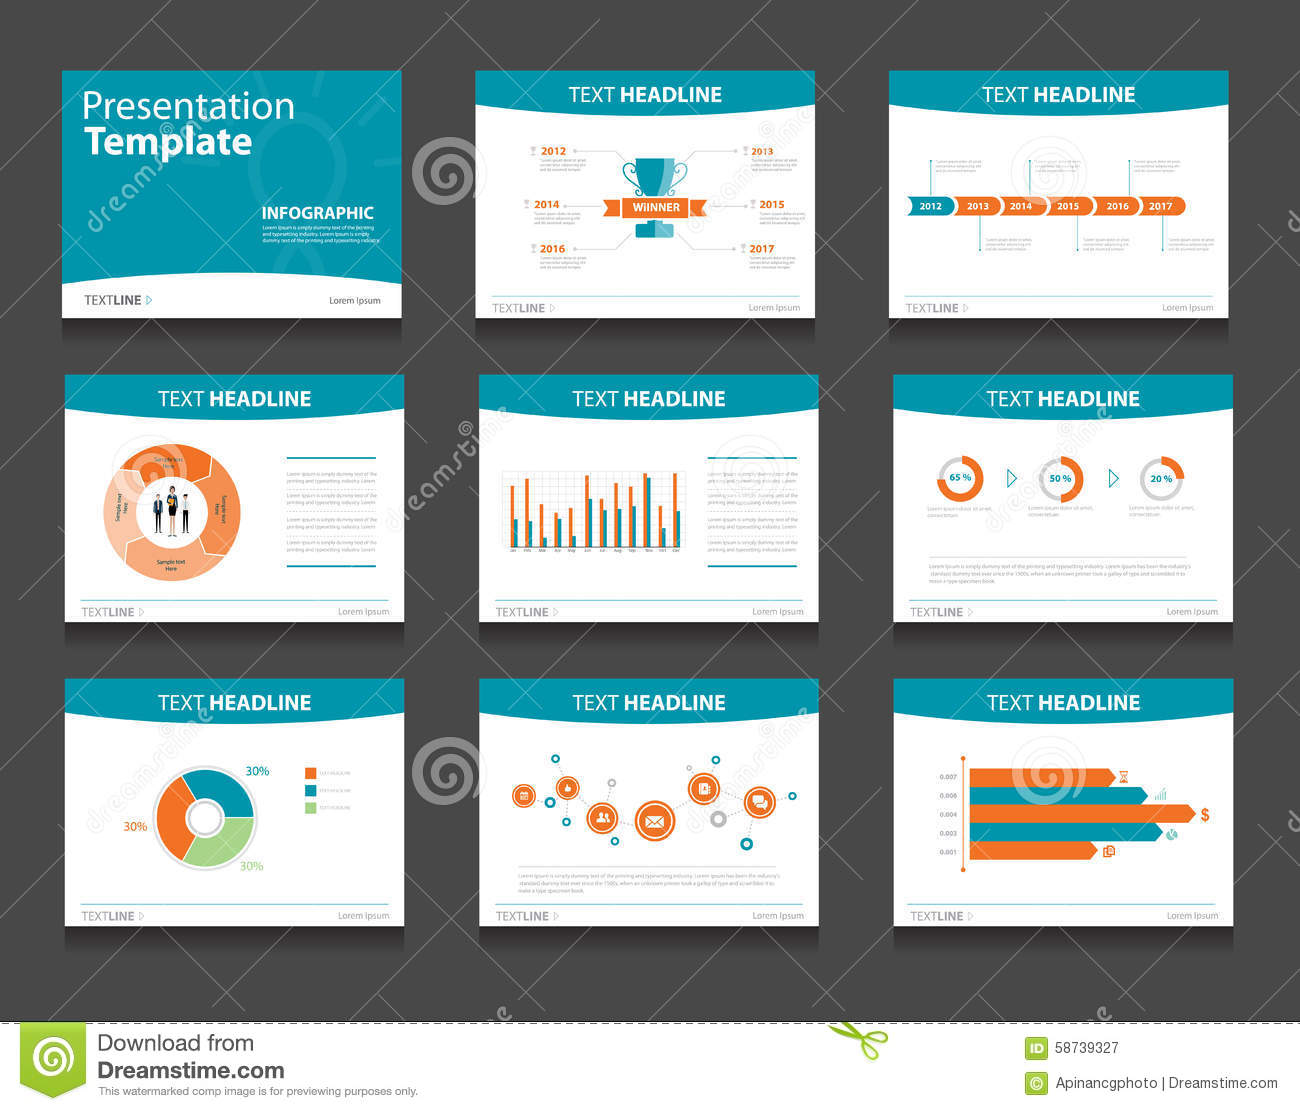 Powerpoint business presentation templates selol ink powerpoint business presentation templates wajeb Images